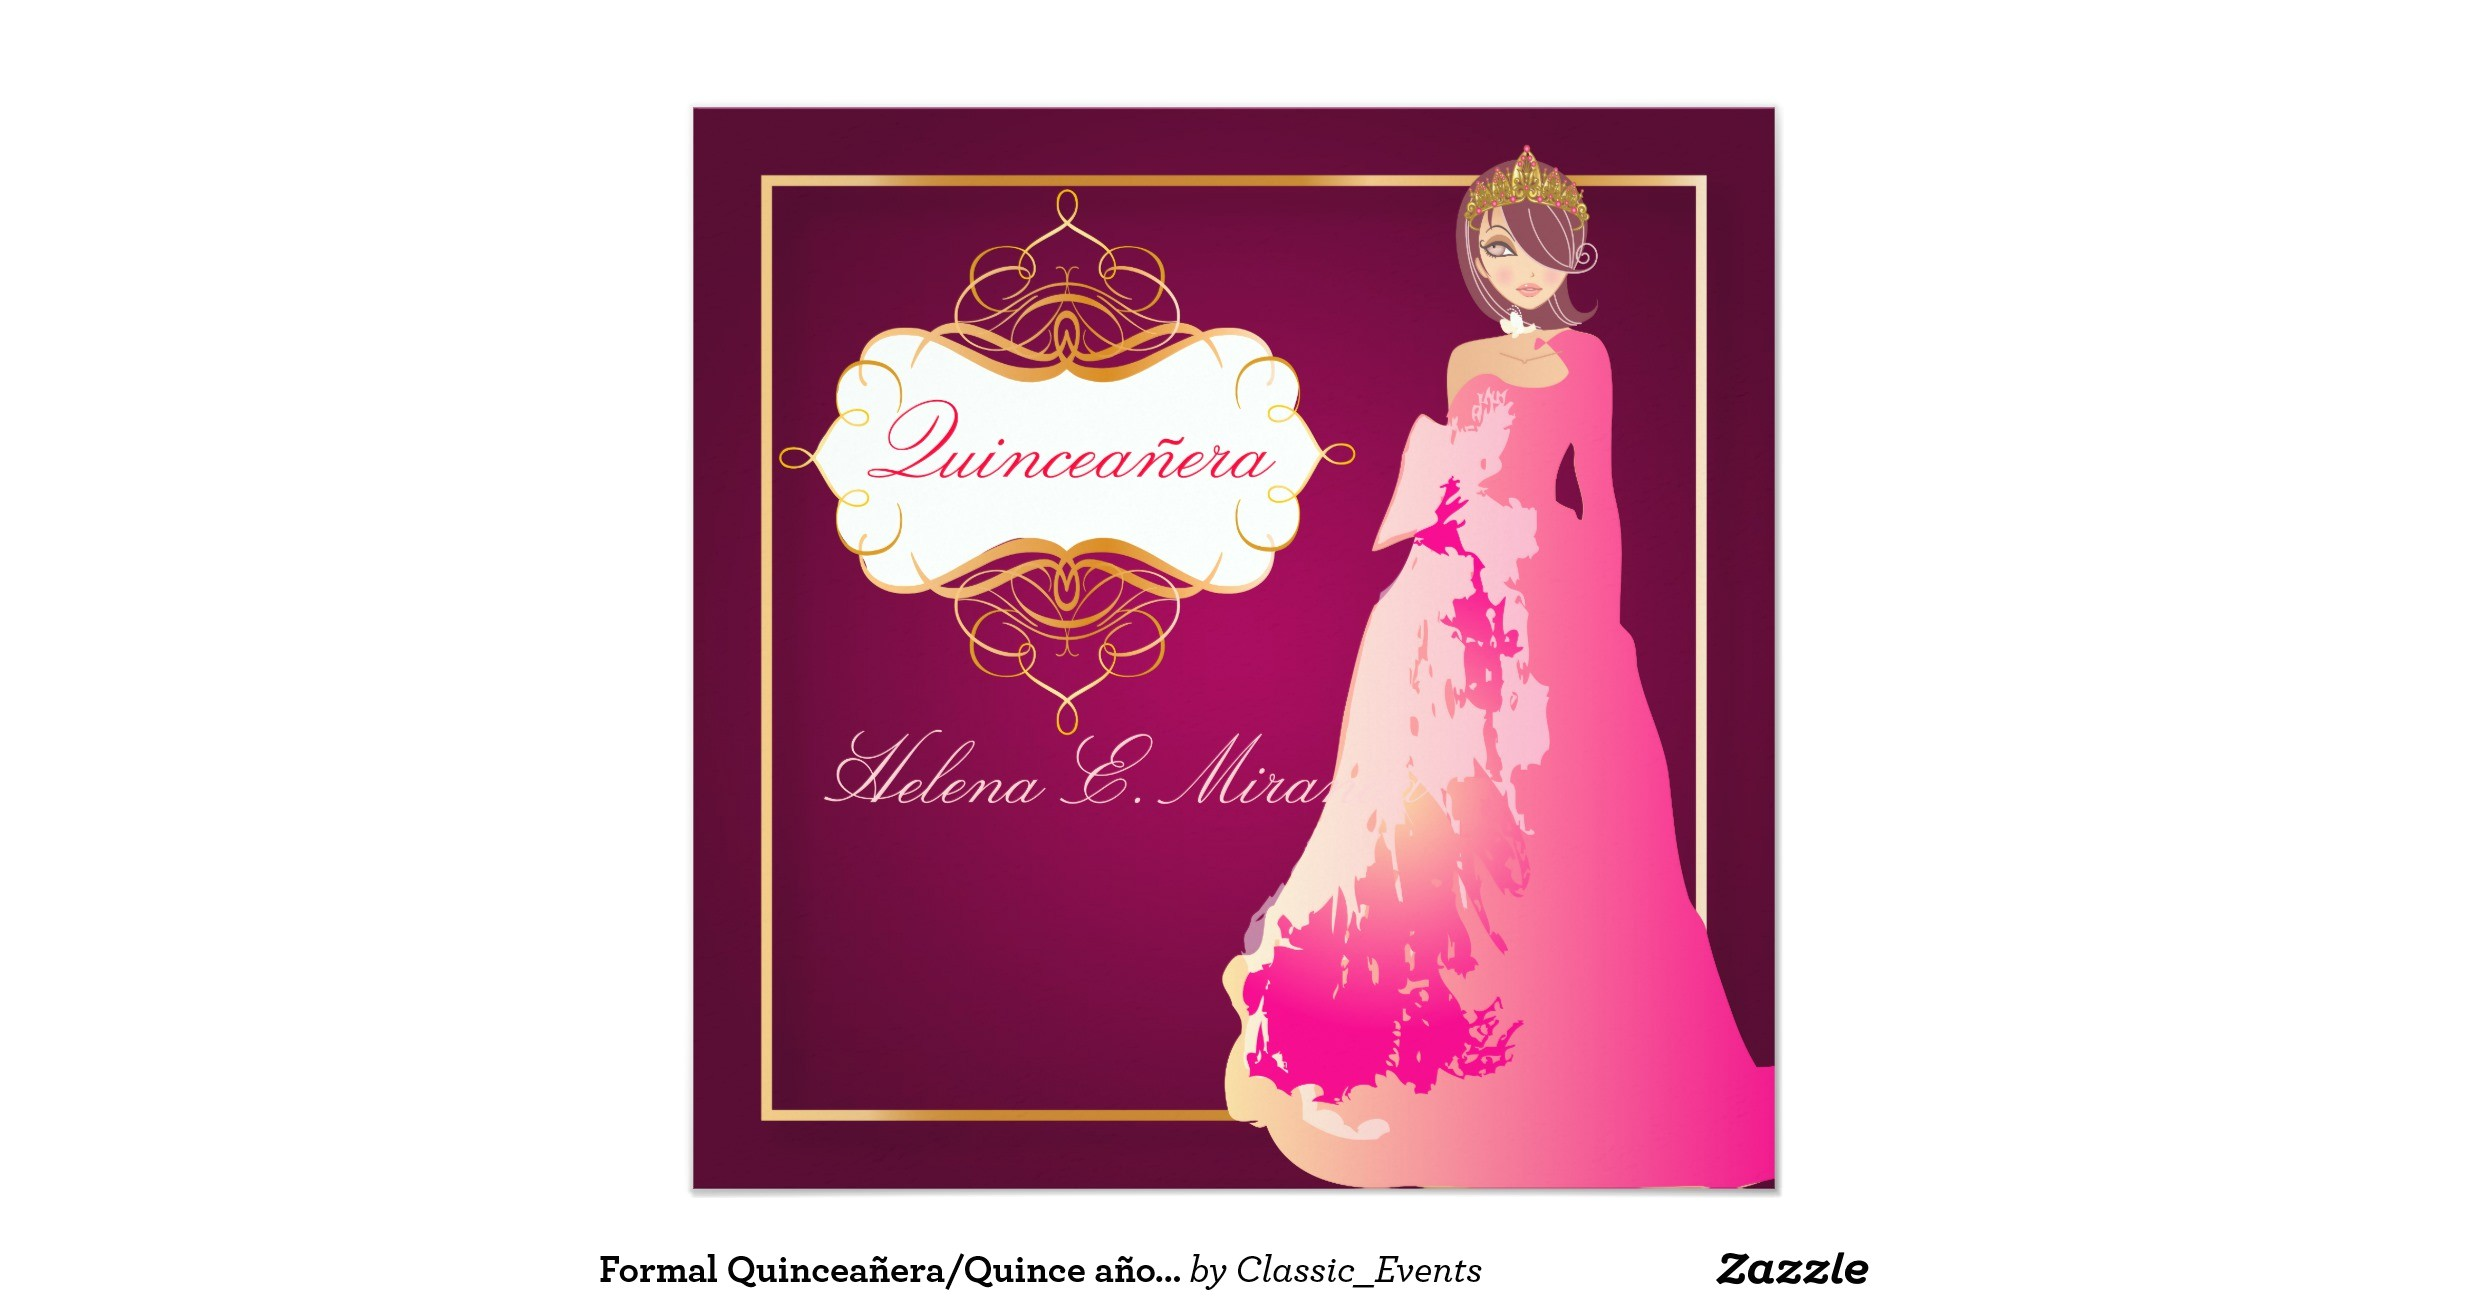 formal quinceanera quince anos princess invitation 161088101407120383